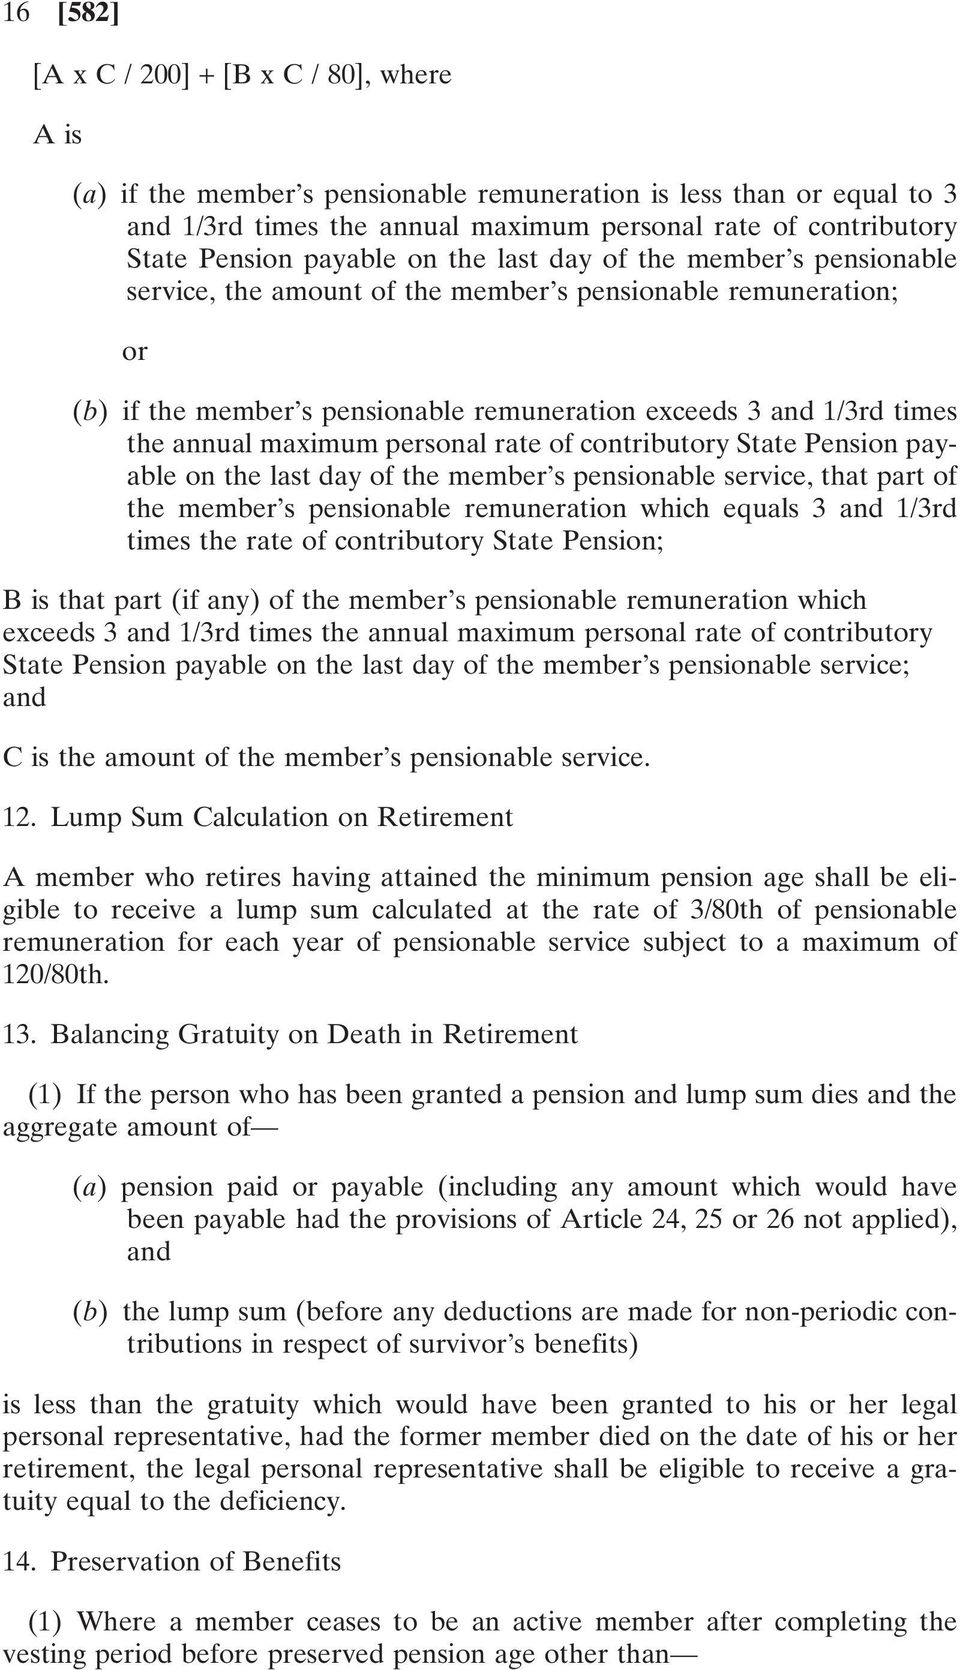 maximum personal rate of contributory State Pension payable on the last day of the member s pensionable service, that part of the member s pensionable remuneration which equals 3 and 1/3rd times the